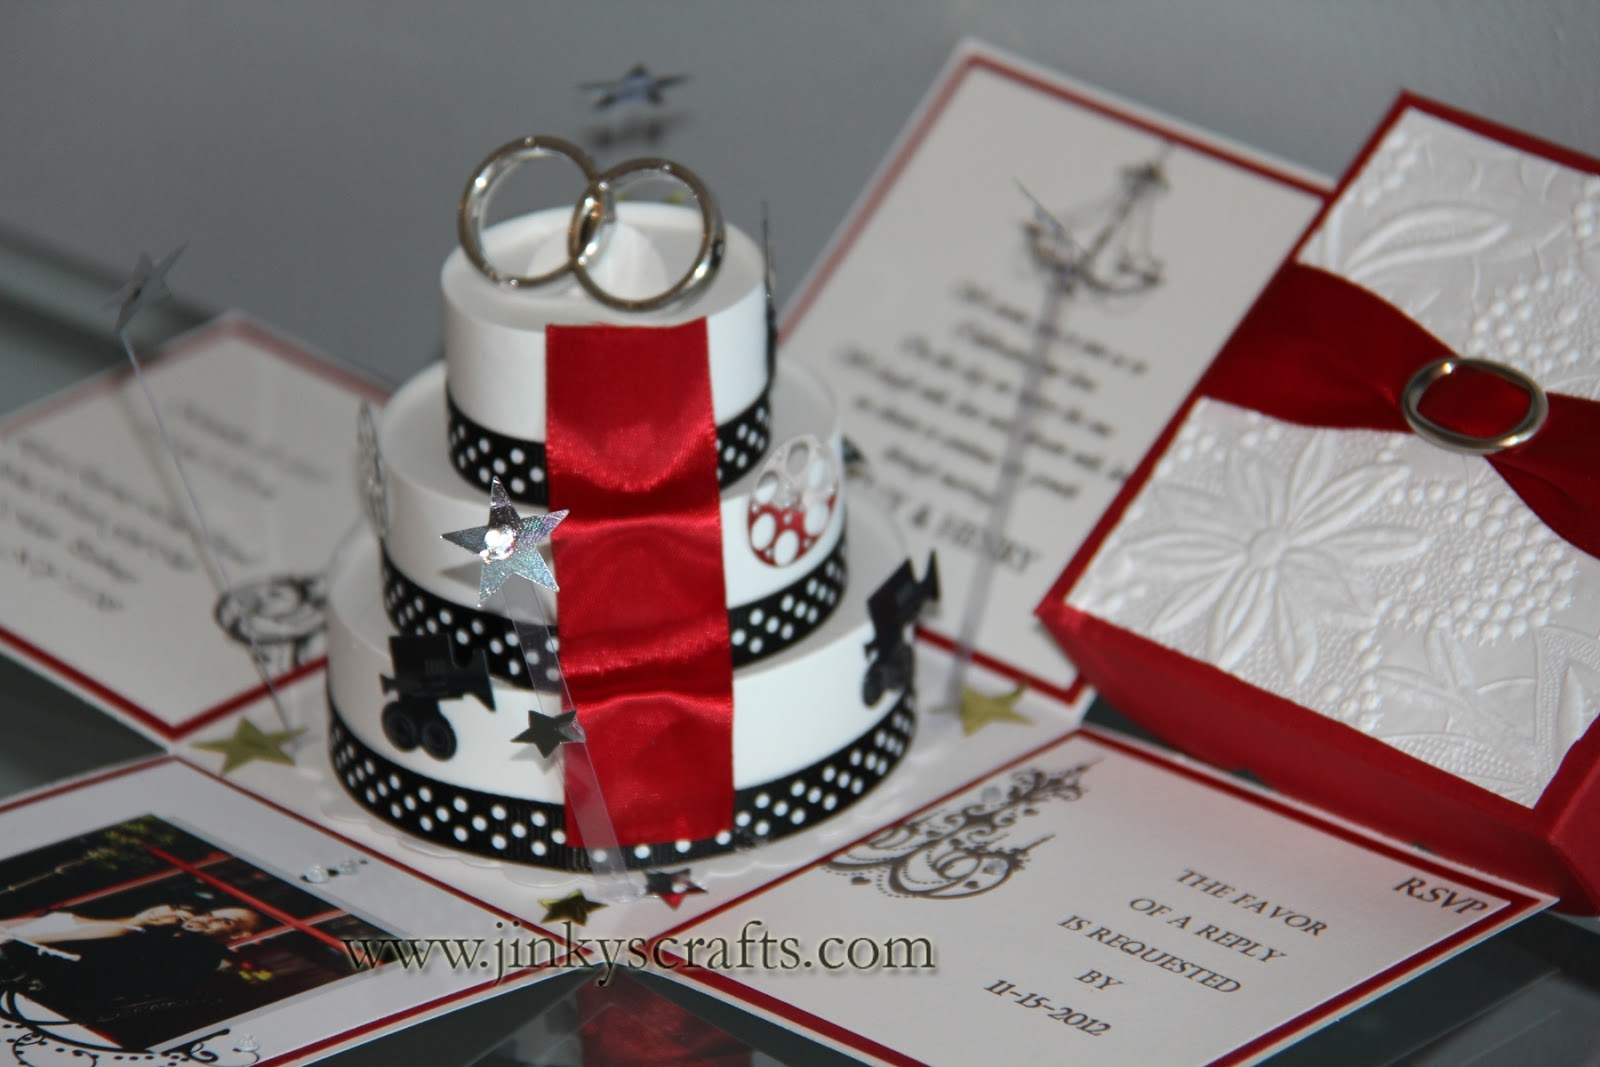 Creative Wedding Invitations: Jinky's Crafts & Designs: March 2013